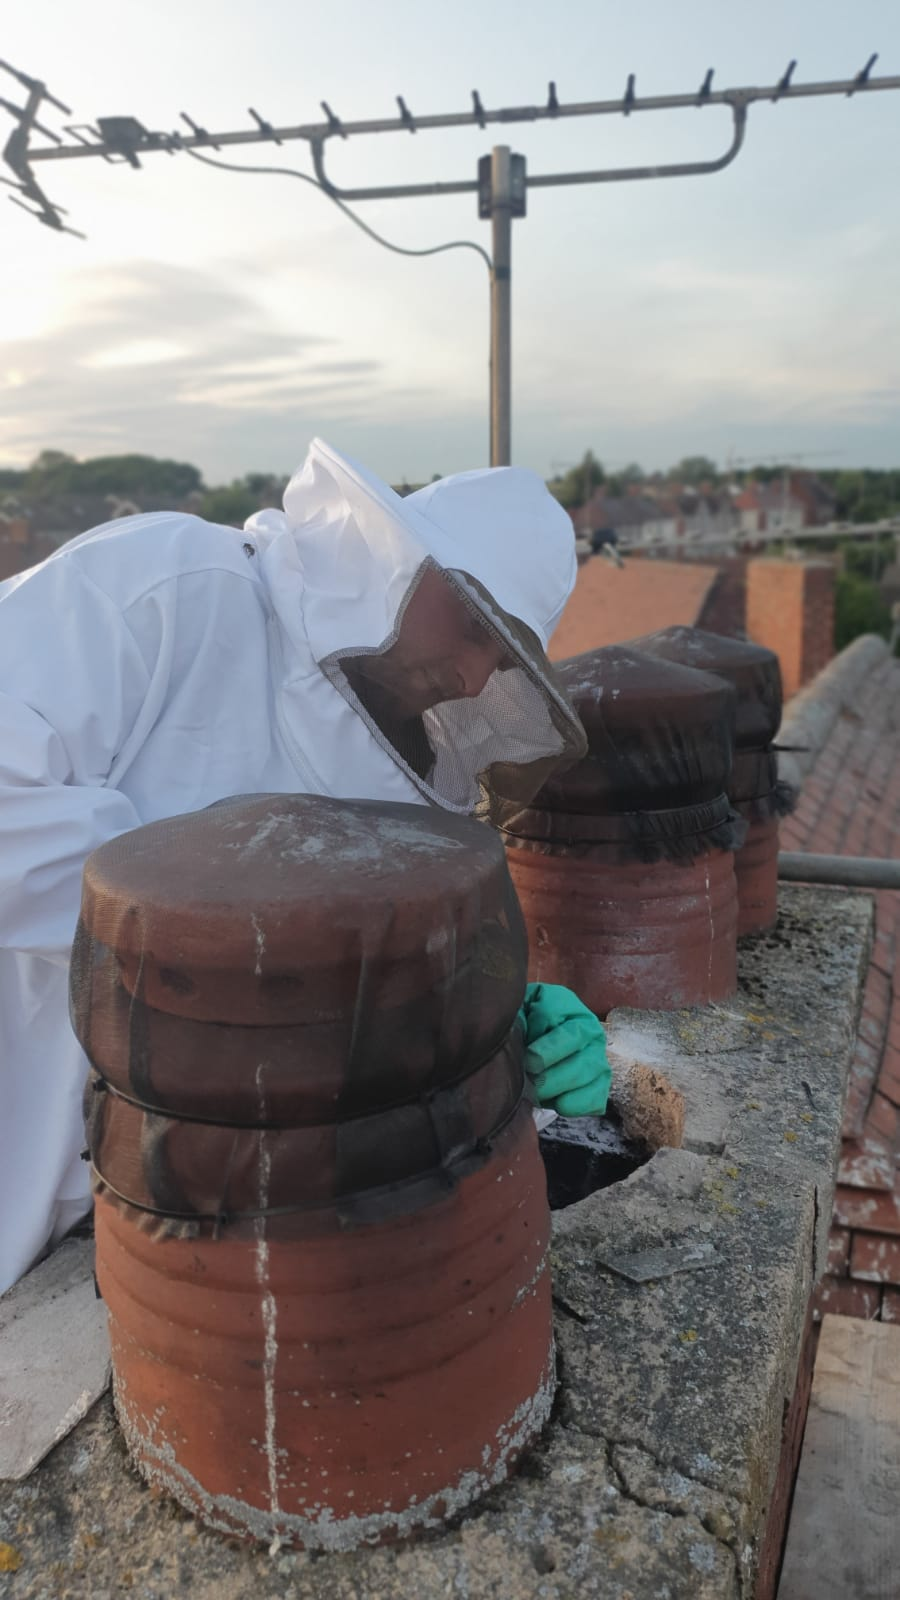 removing a bees nest from a chimney and proofing the site with mesh.